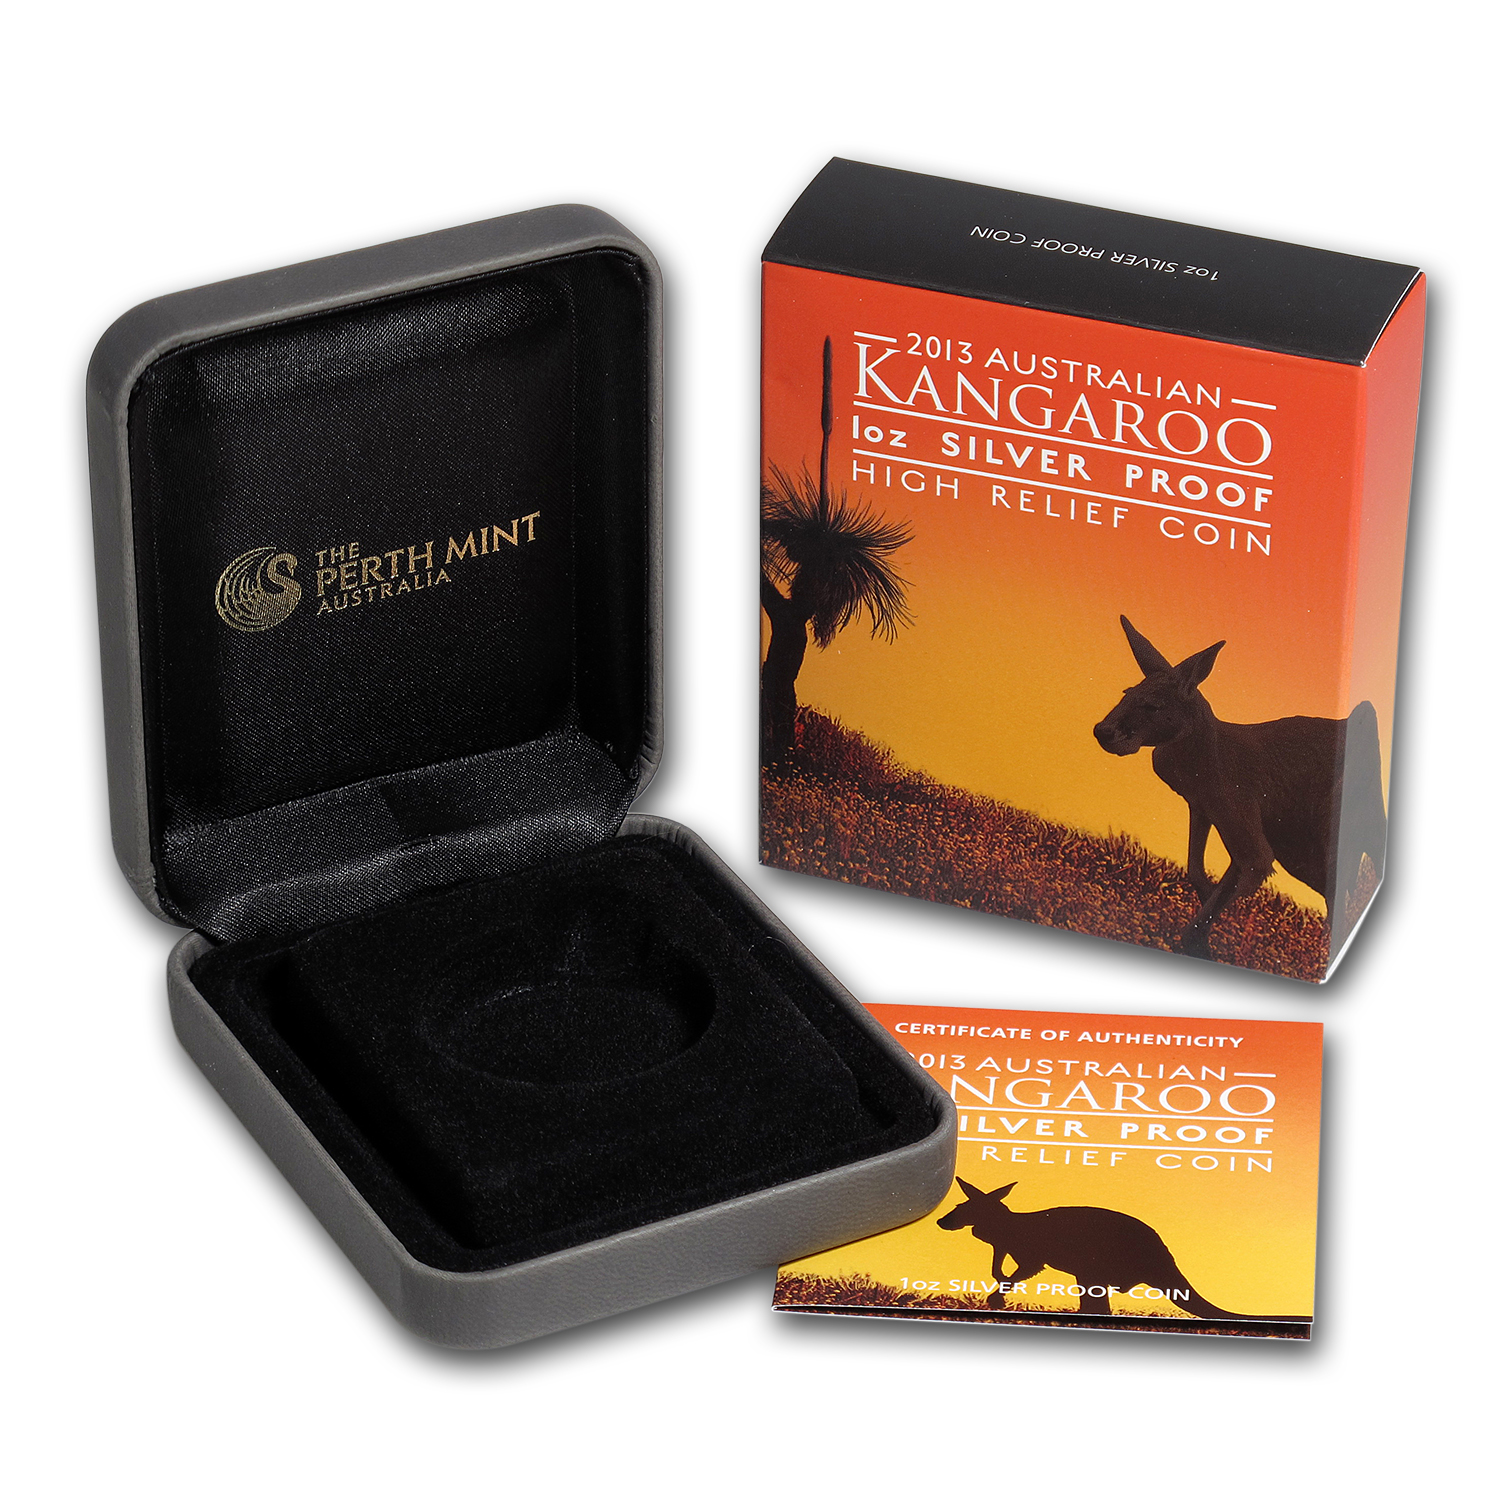 OEM Box & COA - Perth Mint 2013 1 oz Silver Kangaroo HR Proof